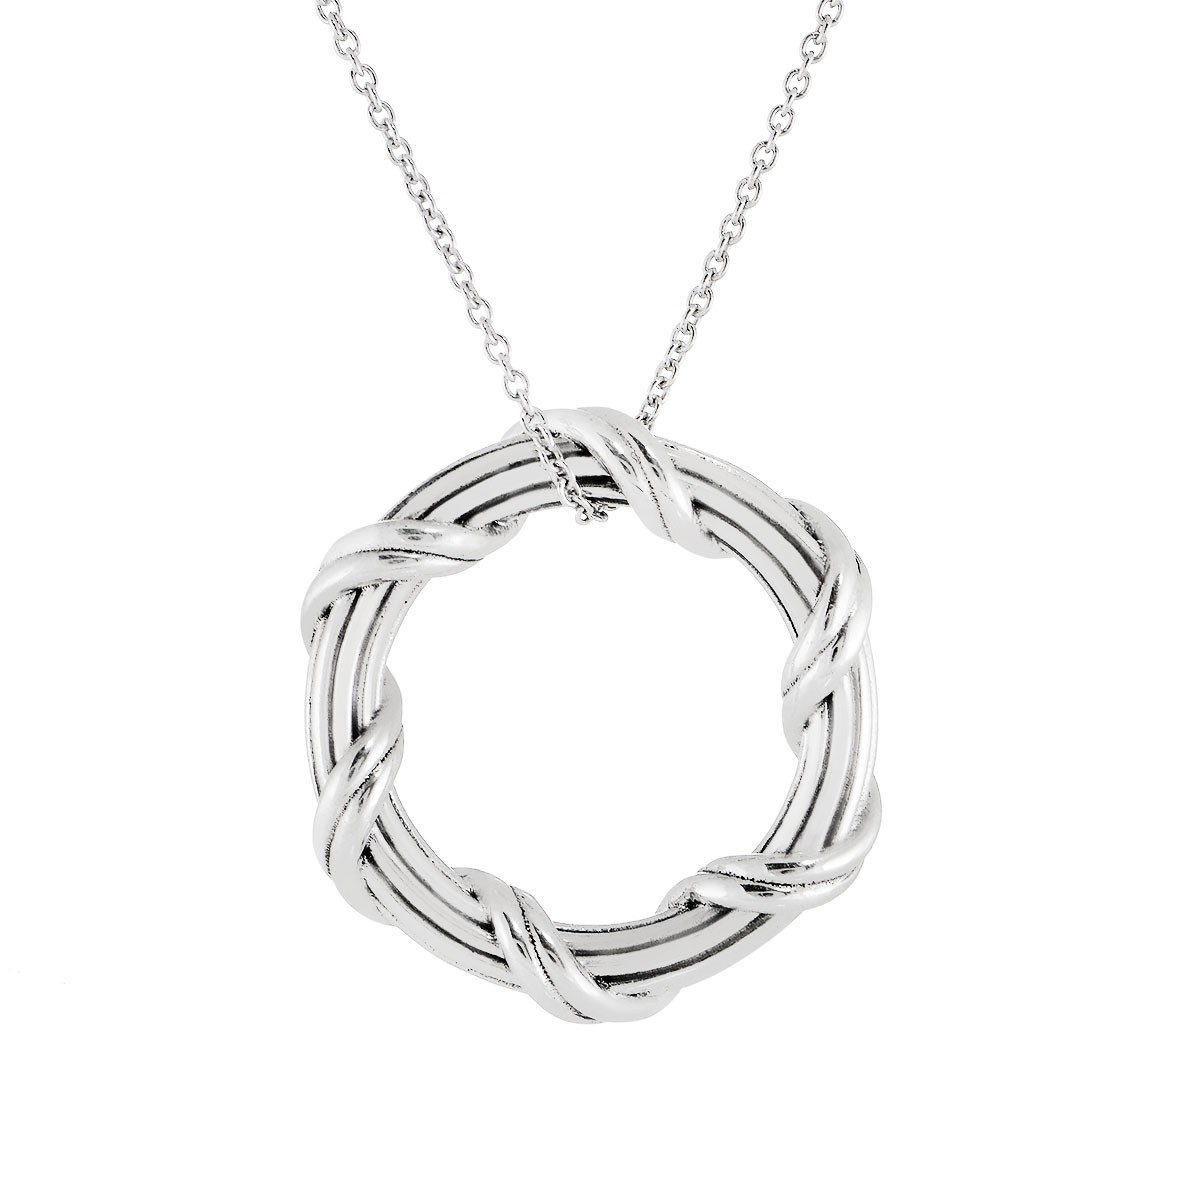 Ribbon   Reed Signature Classic Circle Pendant Necklace in sterling silver  1